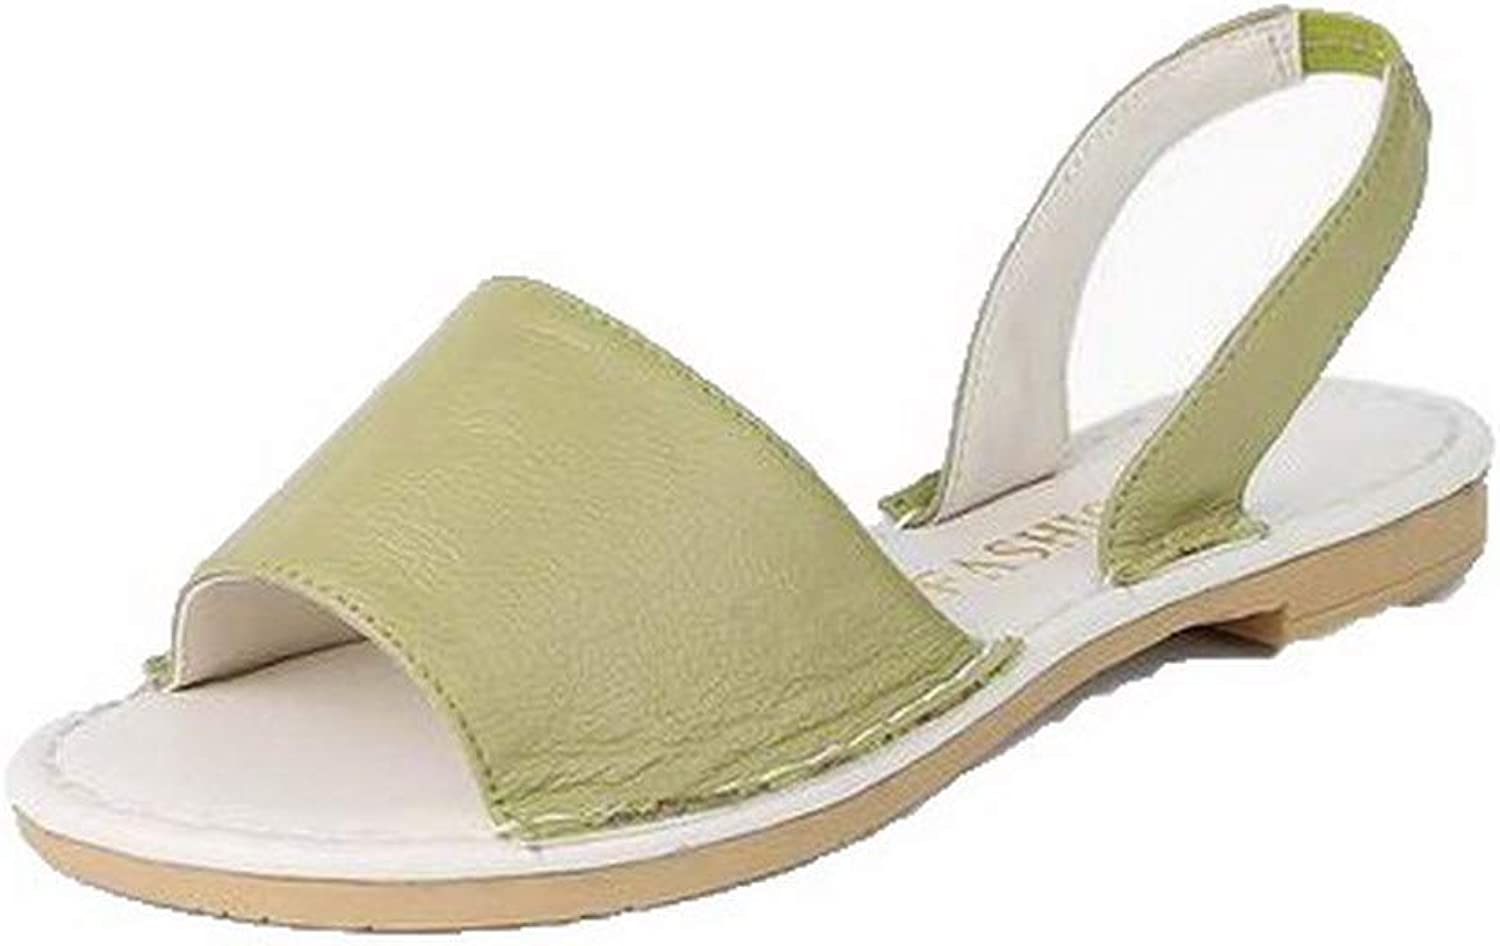 WeiPoot Women's Open-Toe Low-Heels Pull-On Sandals,EGHLH008007